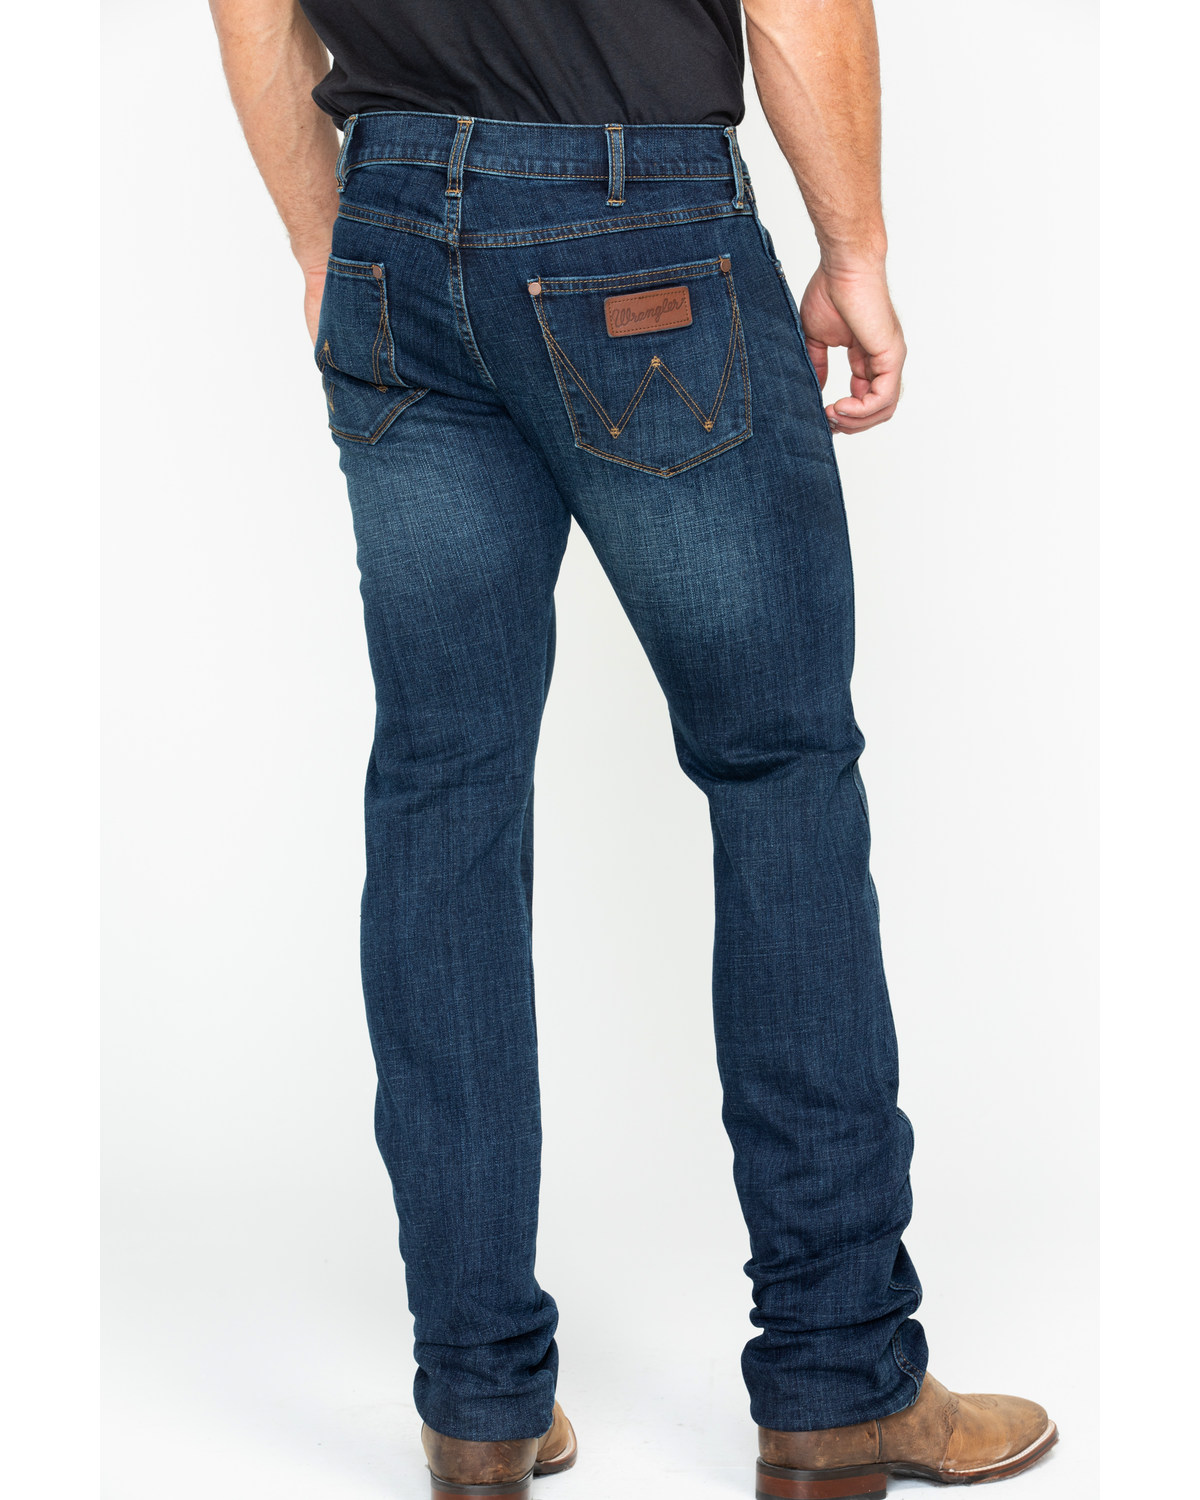 new style & luxury really comfortable best wholesaler Wrangler Retro Men's Anderson Low Rise Skinny Jeans